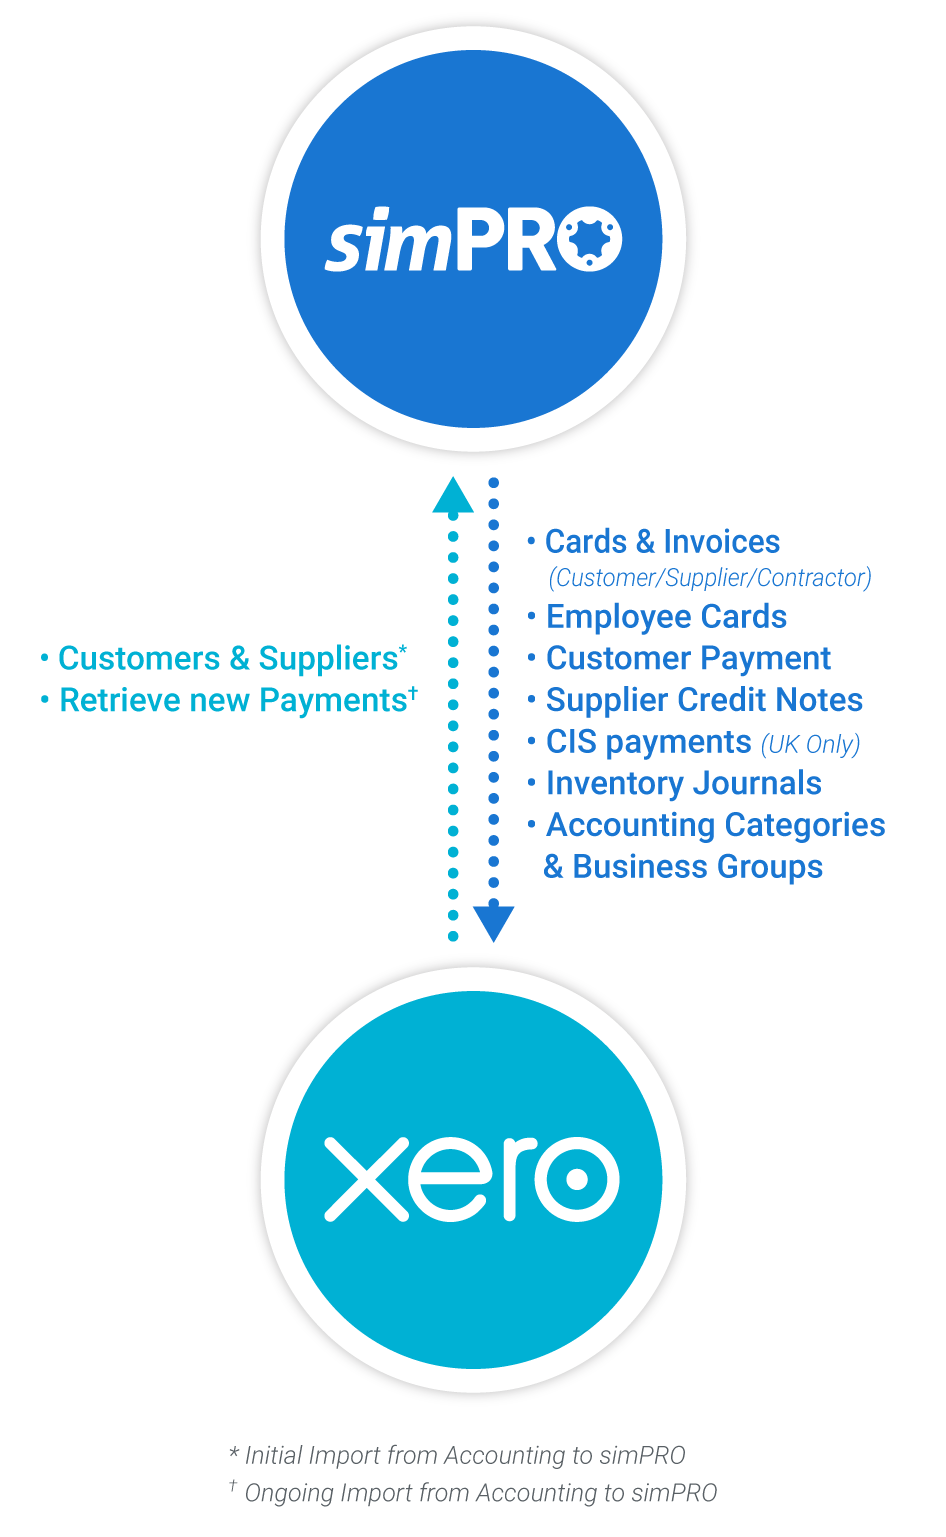 simPRO and Xero functionality composition mobile